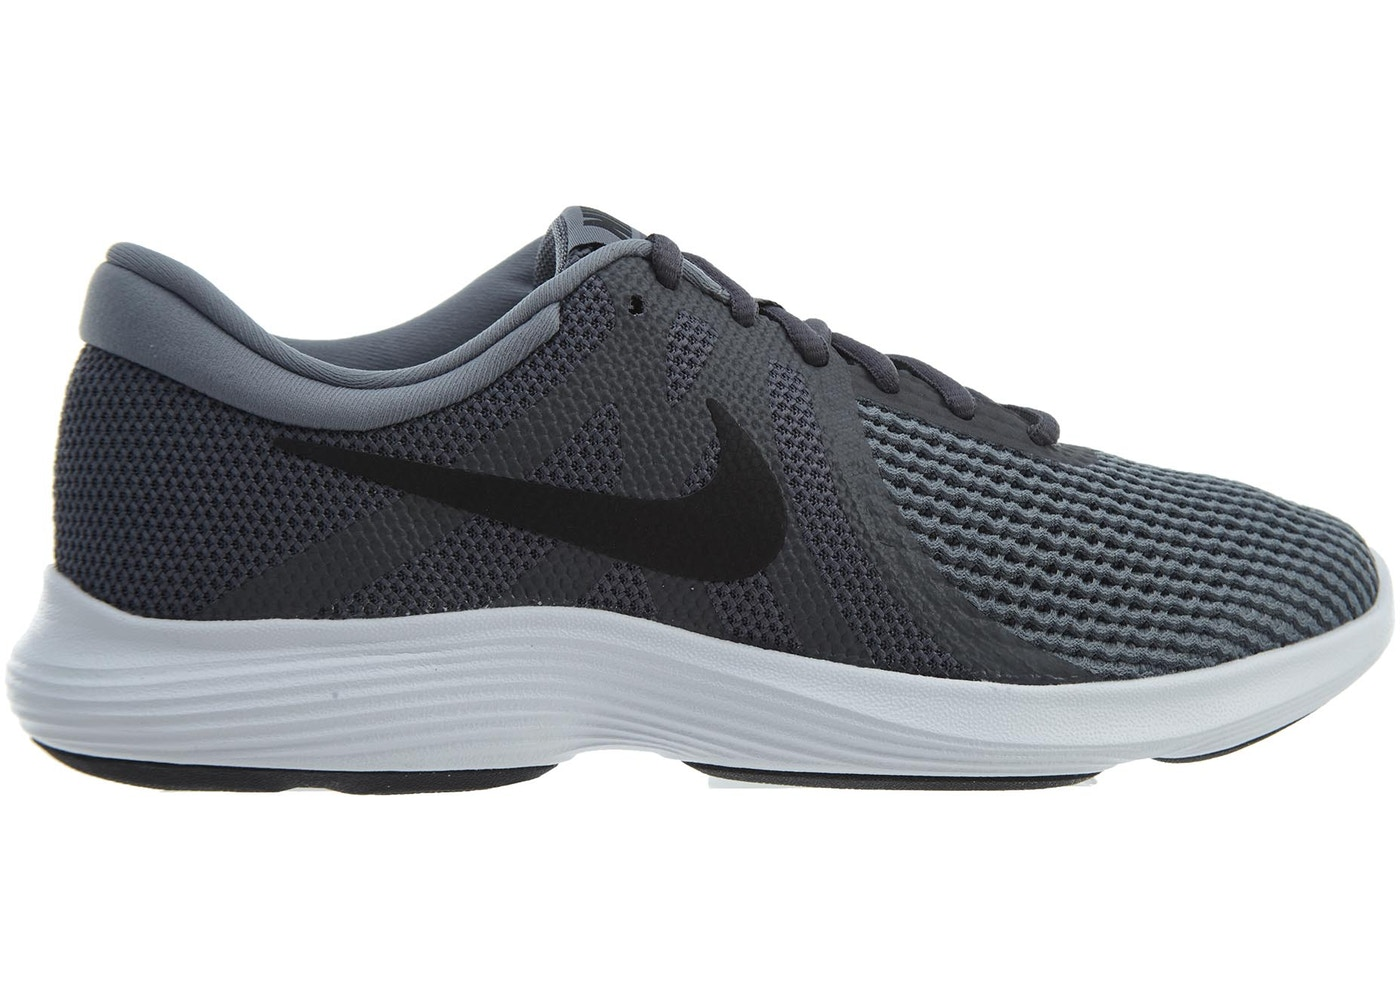 9521b7c78fe1d Nike Revolution 4 Dark Grey Black-Cool Grey - 908988-010